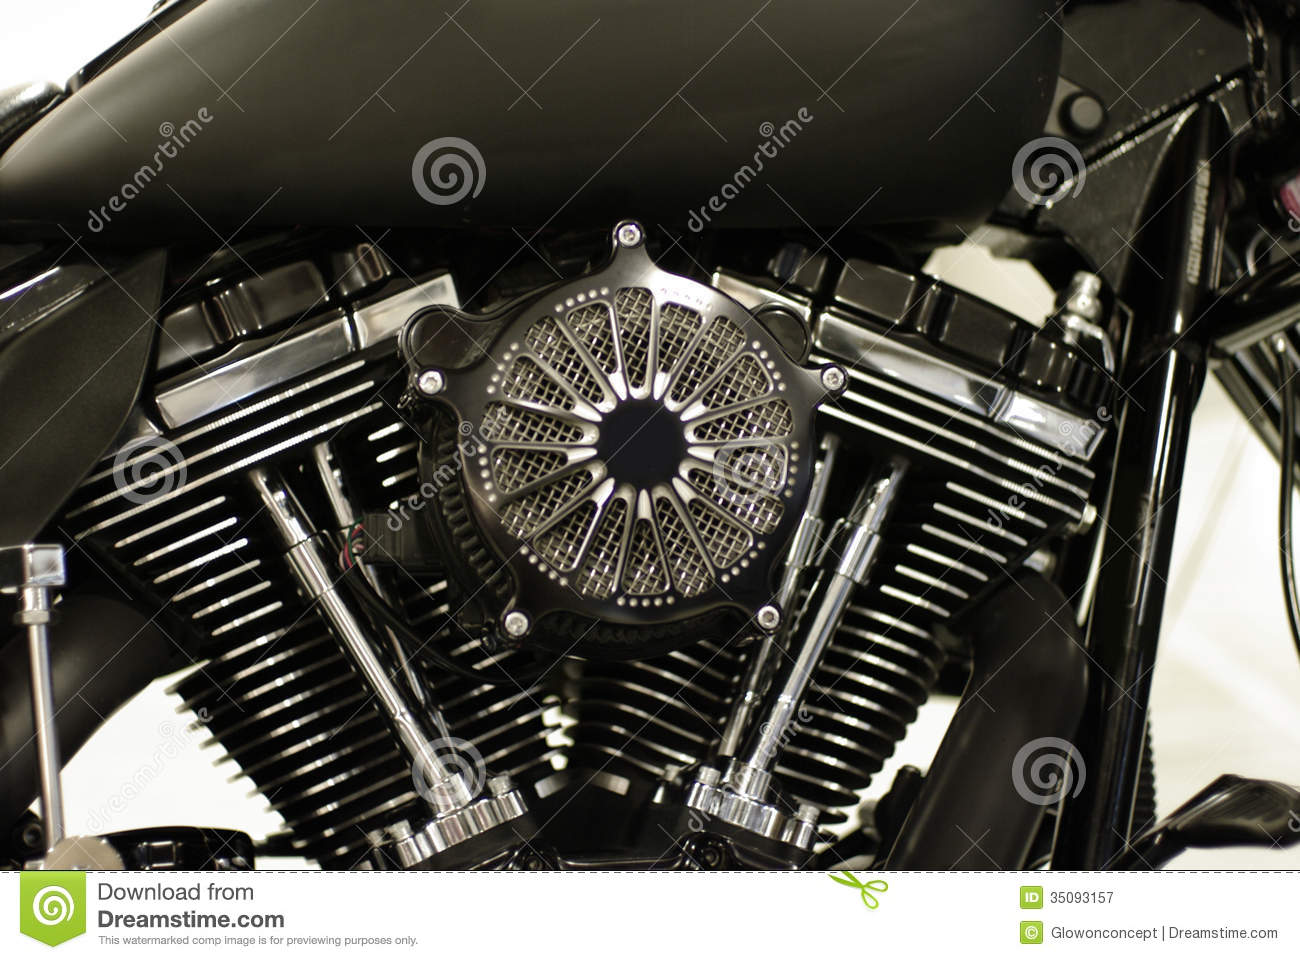 Robot Mechanic Engine Background Royalty Free Stock Photography ...